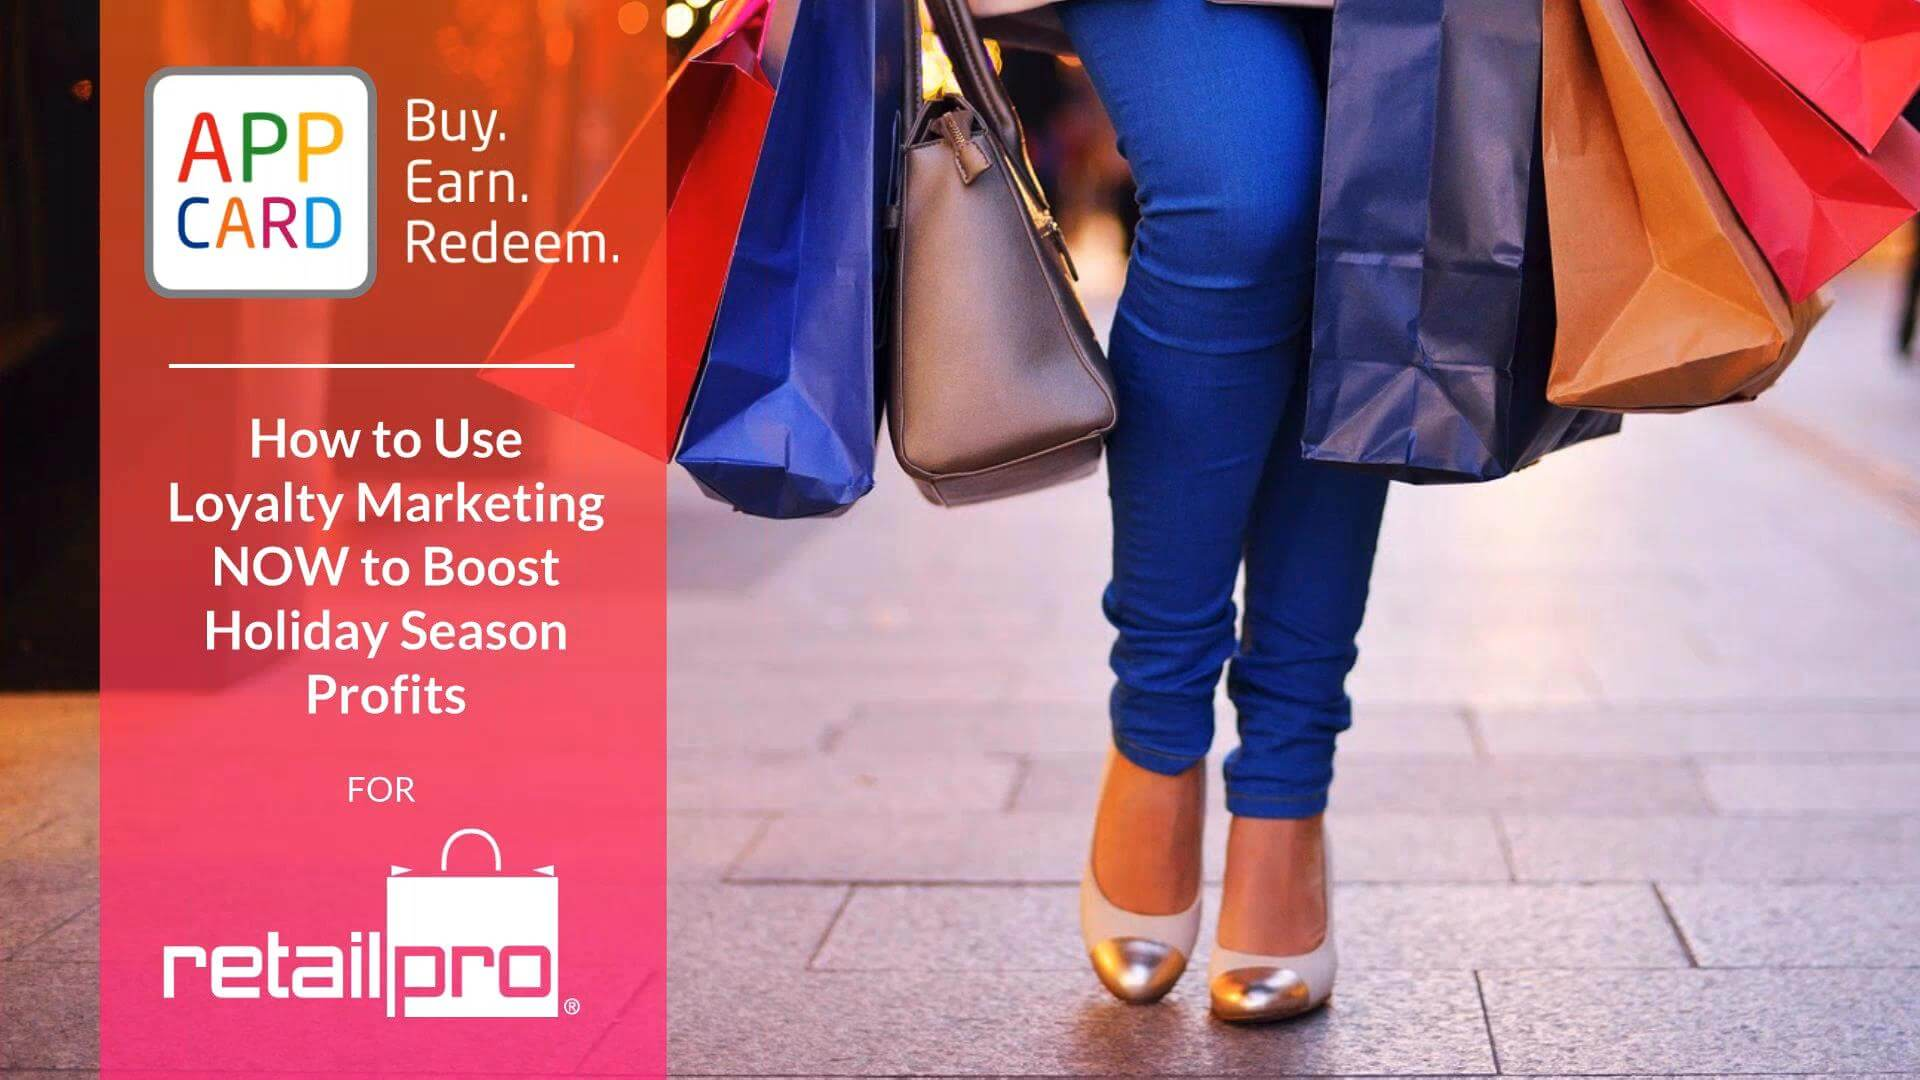 How to Use Loyalty Marketing NOW to Boost Holiday Season Profits